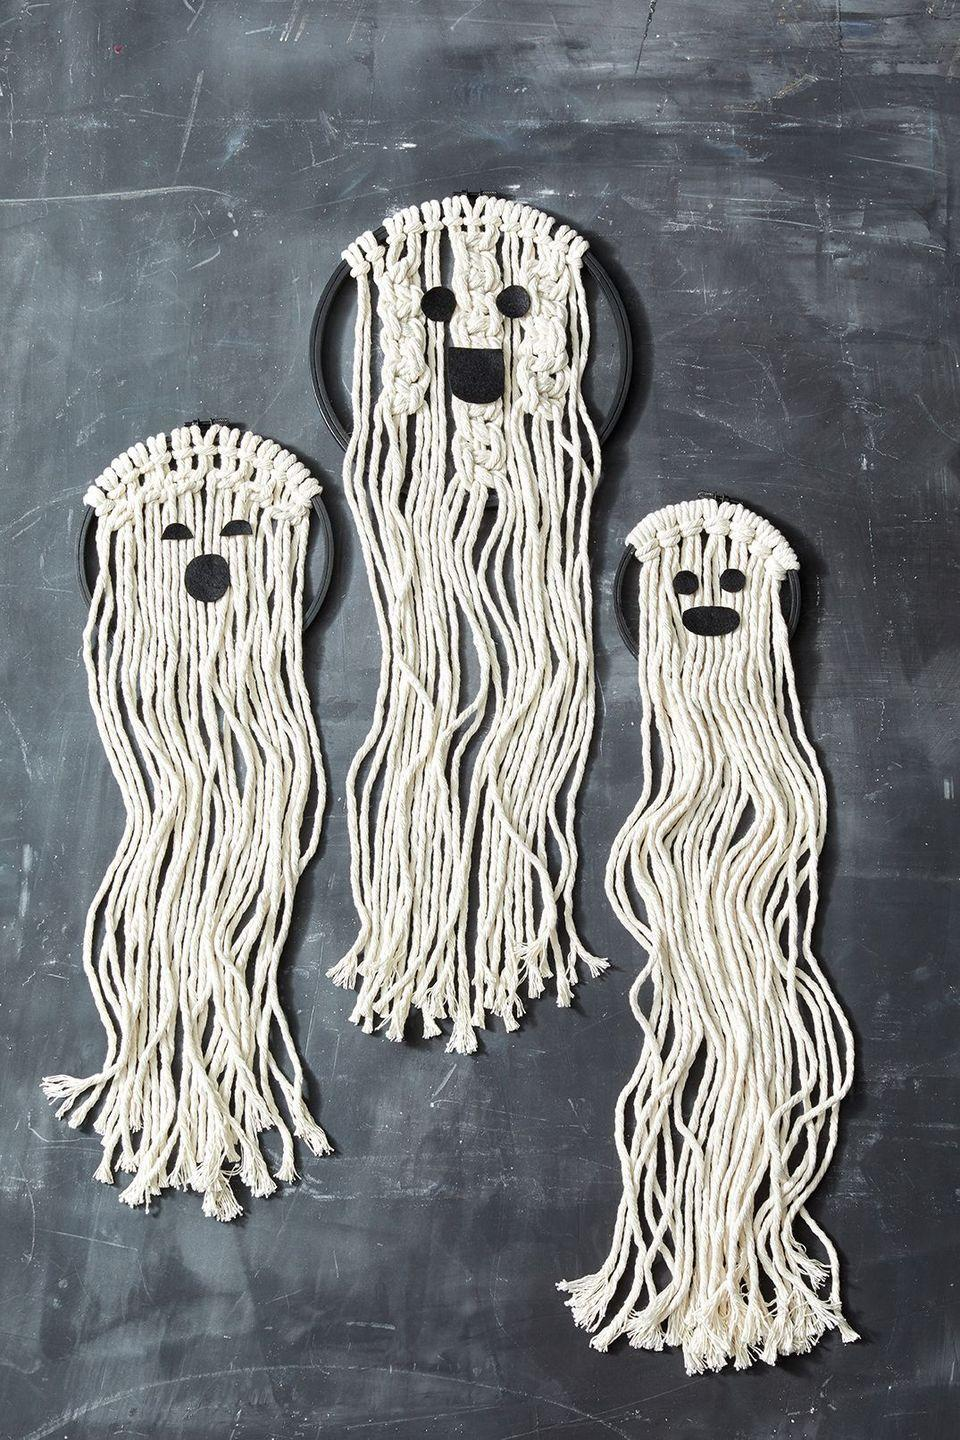 """<p>These friendly little ghosts can be created totally last-minute. Begin by painting embroidery hoops with black paint and let dry. Cut equal lengths of macrame cord about 50"""" long (you will need 12 - 14 pieces of cord per hoop).</p><p><strong>Follow instructions below for simple knots or make your own:</strong></p><ul><li>Lark's Head Knot: hold 2 pieces of cord together and fold in half. Wrap the folded half around the embroidery hoop and pull all 4 tails through the loop. Pull tight to secure. Repeat around the top of the hoop.</li><li>Square Knot: Start by creating Lark's Head knots with one cord each across the top of the hoop. Starting with leftmost piece, wrap it over the next 2 cords to the right. Then take the 4th cord and wrap it behind the previous two cords on the left, tucking it through the space between the first 2 cords. Pull to tighten. Continue across the embroidery hoop.</li></ul><p><a class=""""link rapid-noclick-resp"""" href=""""https://www.amazon.com/Caydo-Embroidery-Circle-Stitch-Sewing/dp/B07L3D4R59?tag=syn-yahoo-20&ascsubtag=%5Bartid%7C10055.g.421%5Bsrc%7Cyahoo-us"""" rel=""""nofollow noopener"""" target=""""_blank"""" data-ylk=""""slk:SHOP EMBROIDERY HOOPS"""">SHOP EMBROIDERY HOOPS</a></p>"""